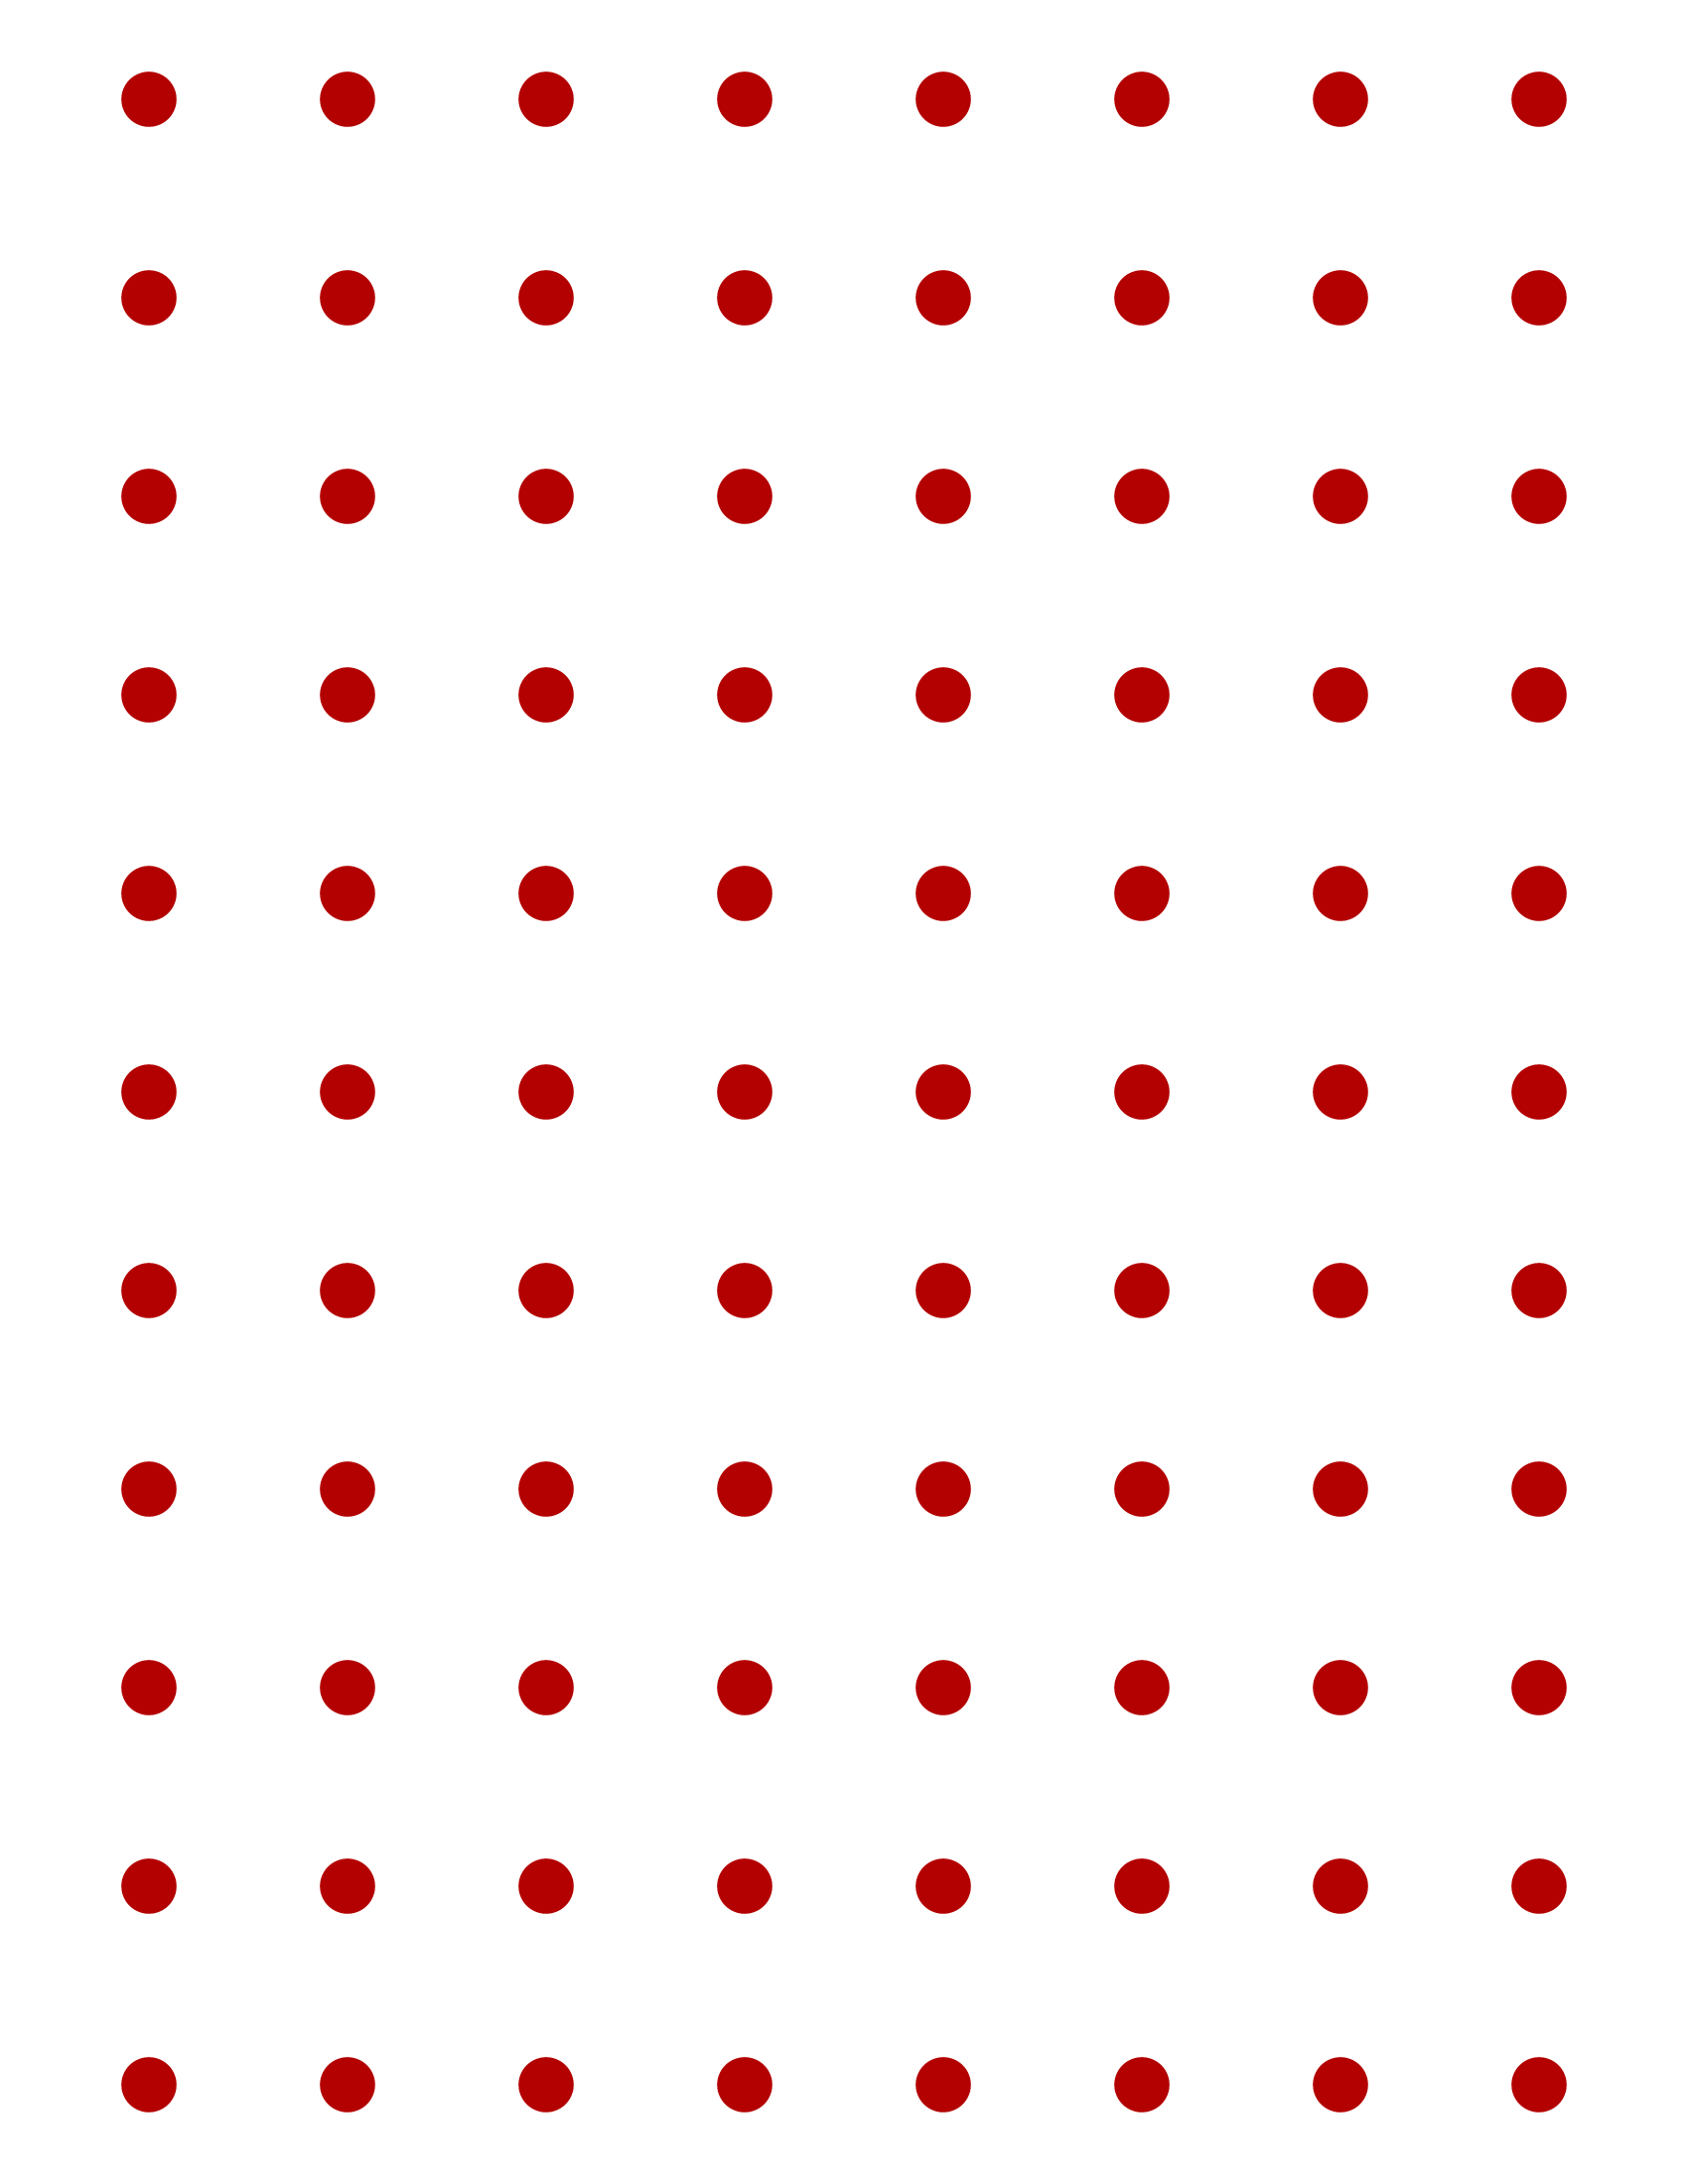 It's just a picture of Free Printable Dot Grid Paper for square